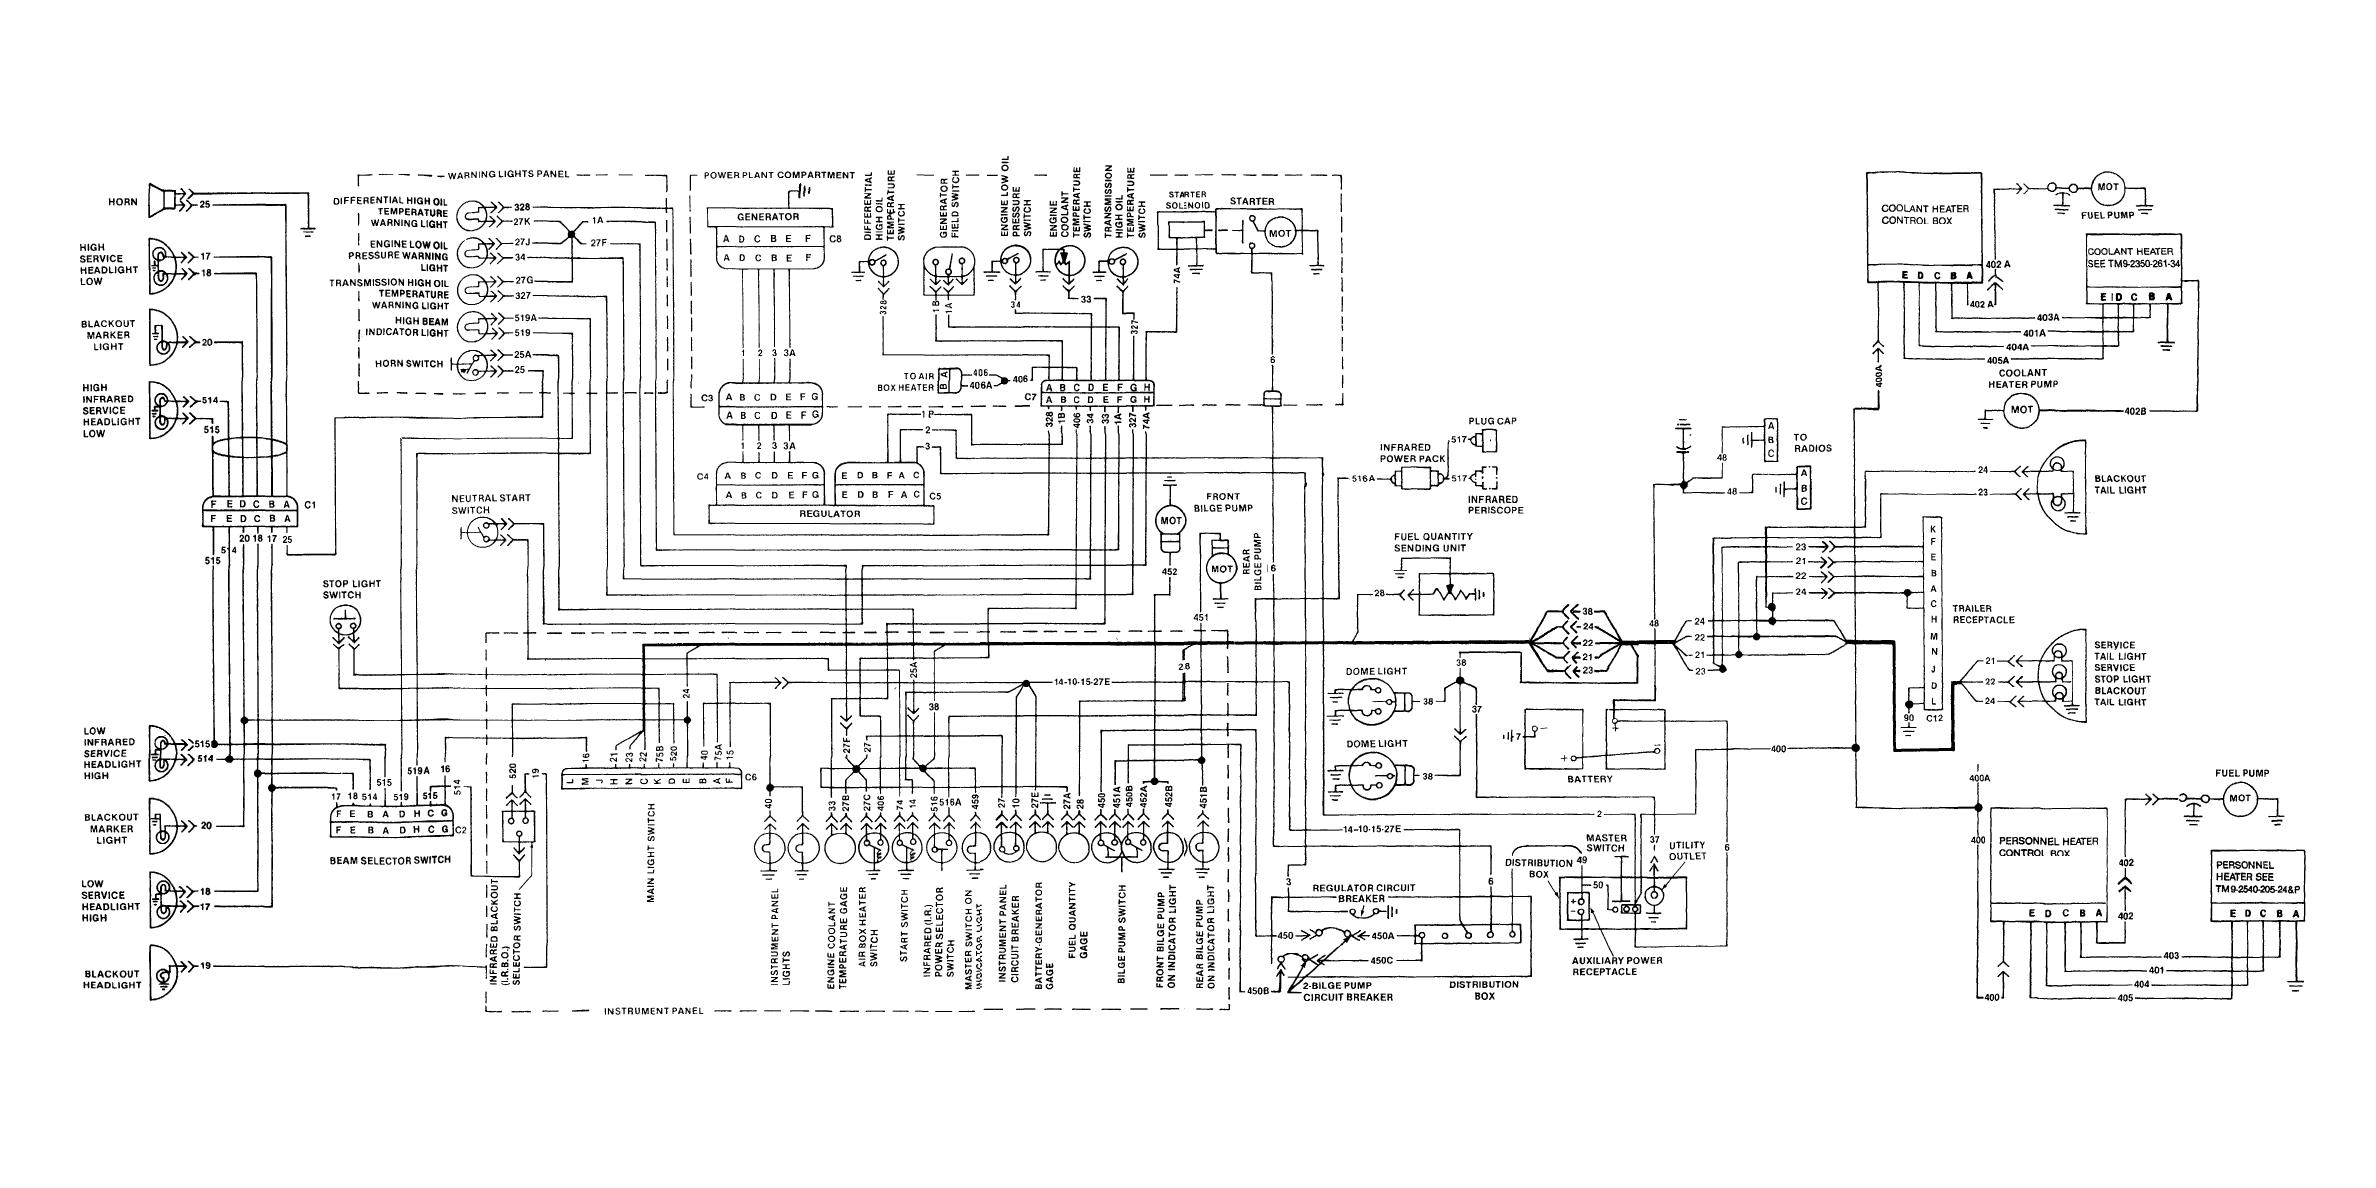 M113A2 ELECTRICAL WIRING DIAGRAM 100 AMP GENERATOR on 6 amp wiring diagram, 100 amp transformer, residential circuit breaker sub panel diagram, 100 amp service diagram, 30 amp wiring diagram, 100 amp electrical, 125 amp wiring diagram, 100 amp breaker box, 2 amp wiring diagram, 50 amp wiring diagram, 60 amp sub panel diagram, 100 amp alternator, 100 amp frame, 100 amp battery, 20 amp wiring diagram,